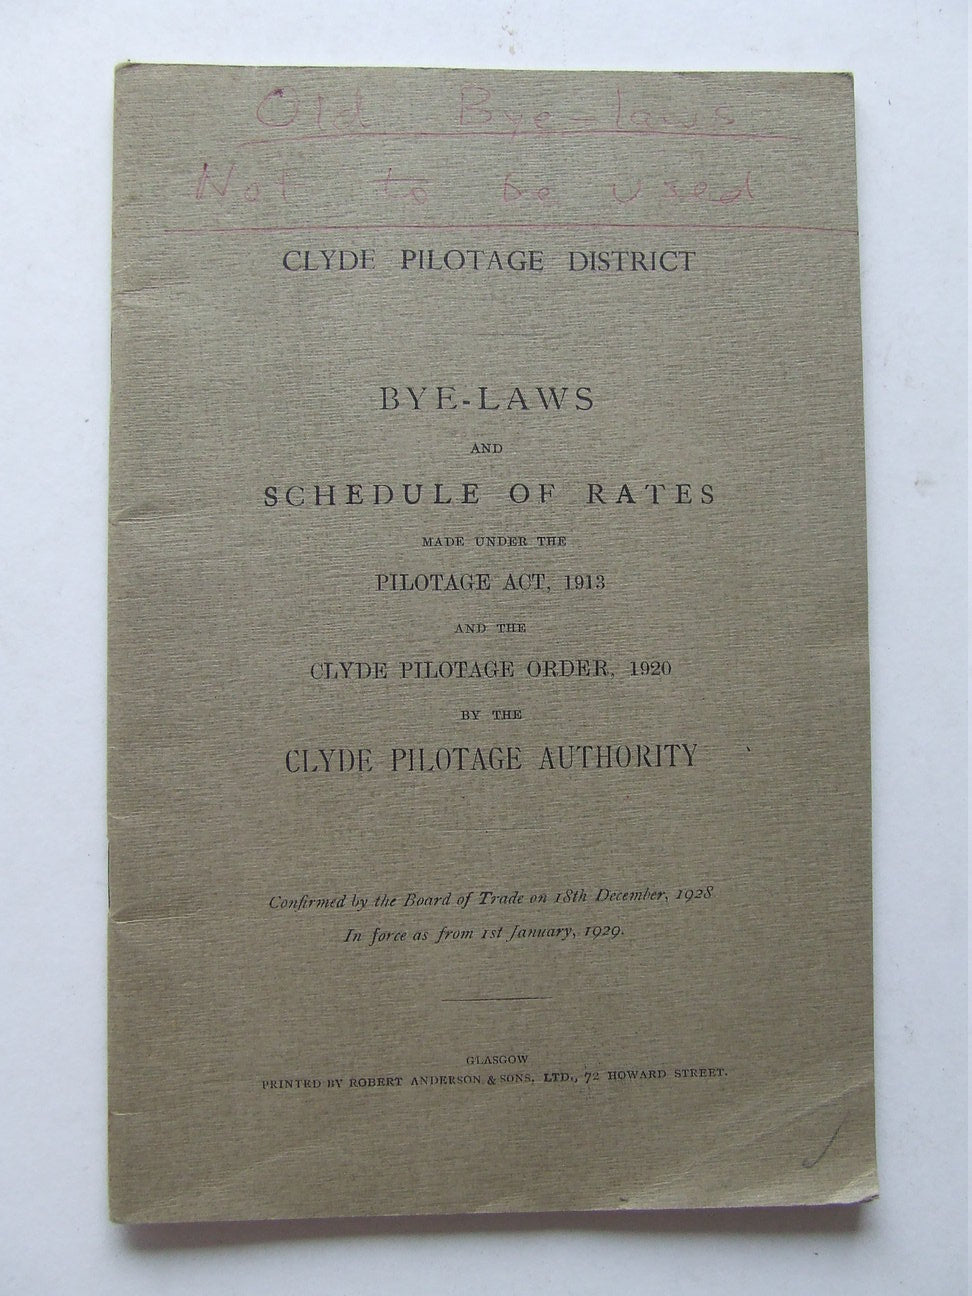 Bye-laws and Schedule of Rates made under the Pilotage Act, 1913